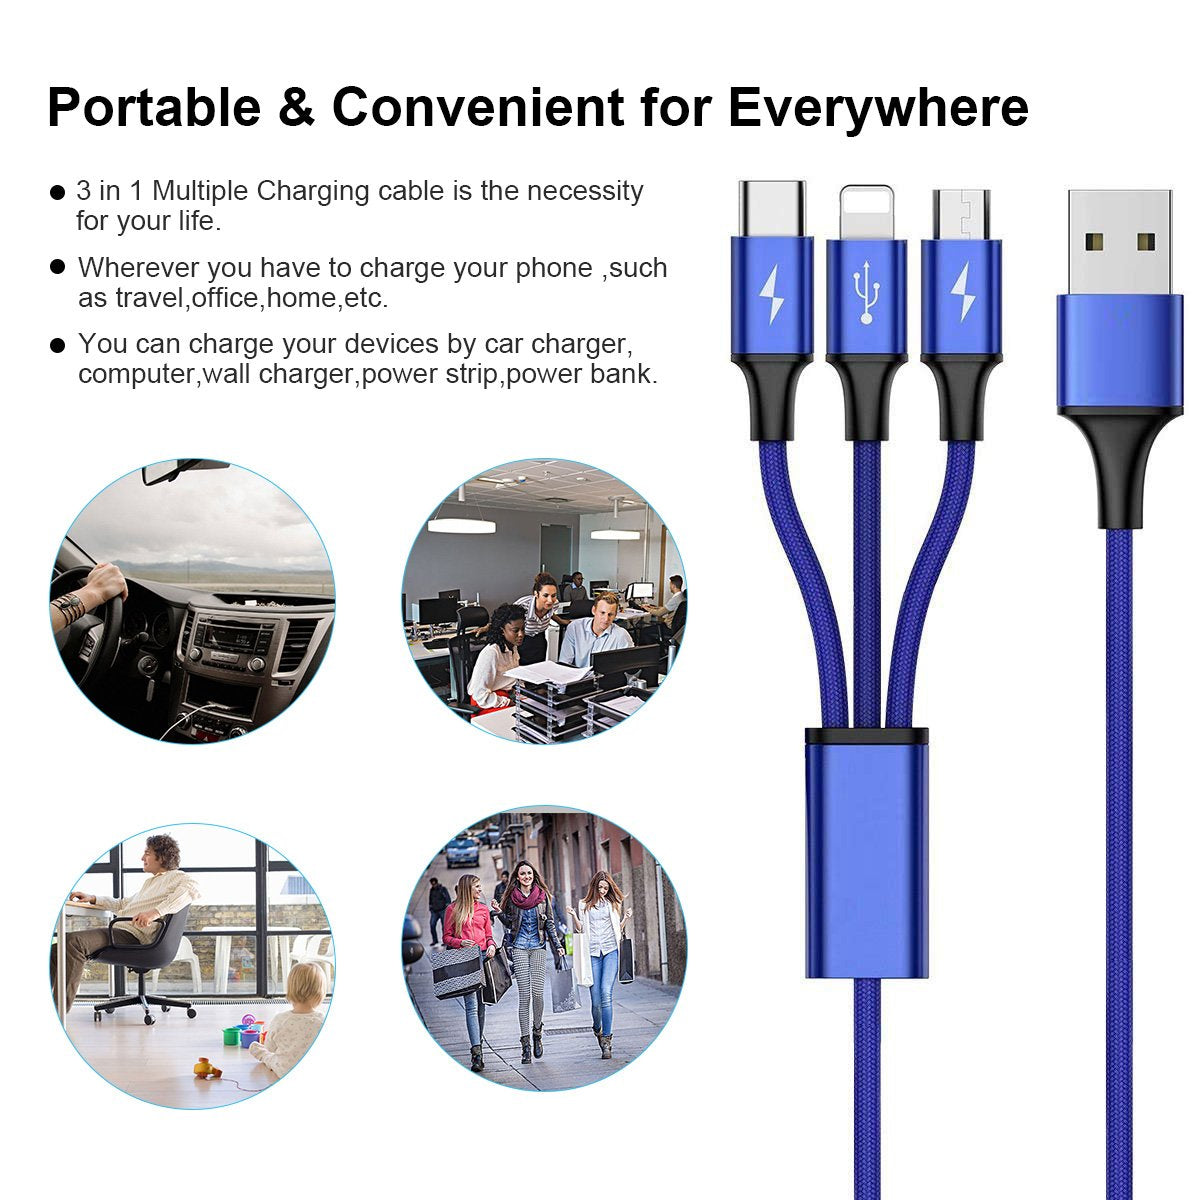 3in1 USB cable - uses